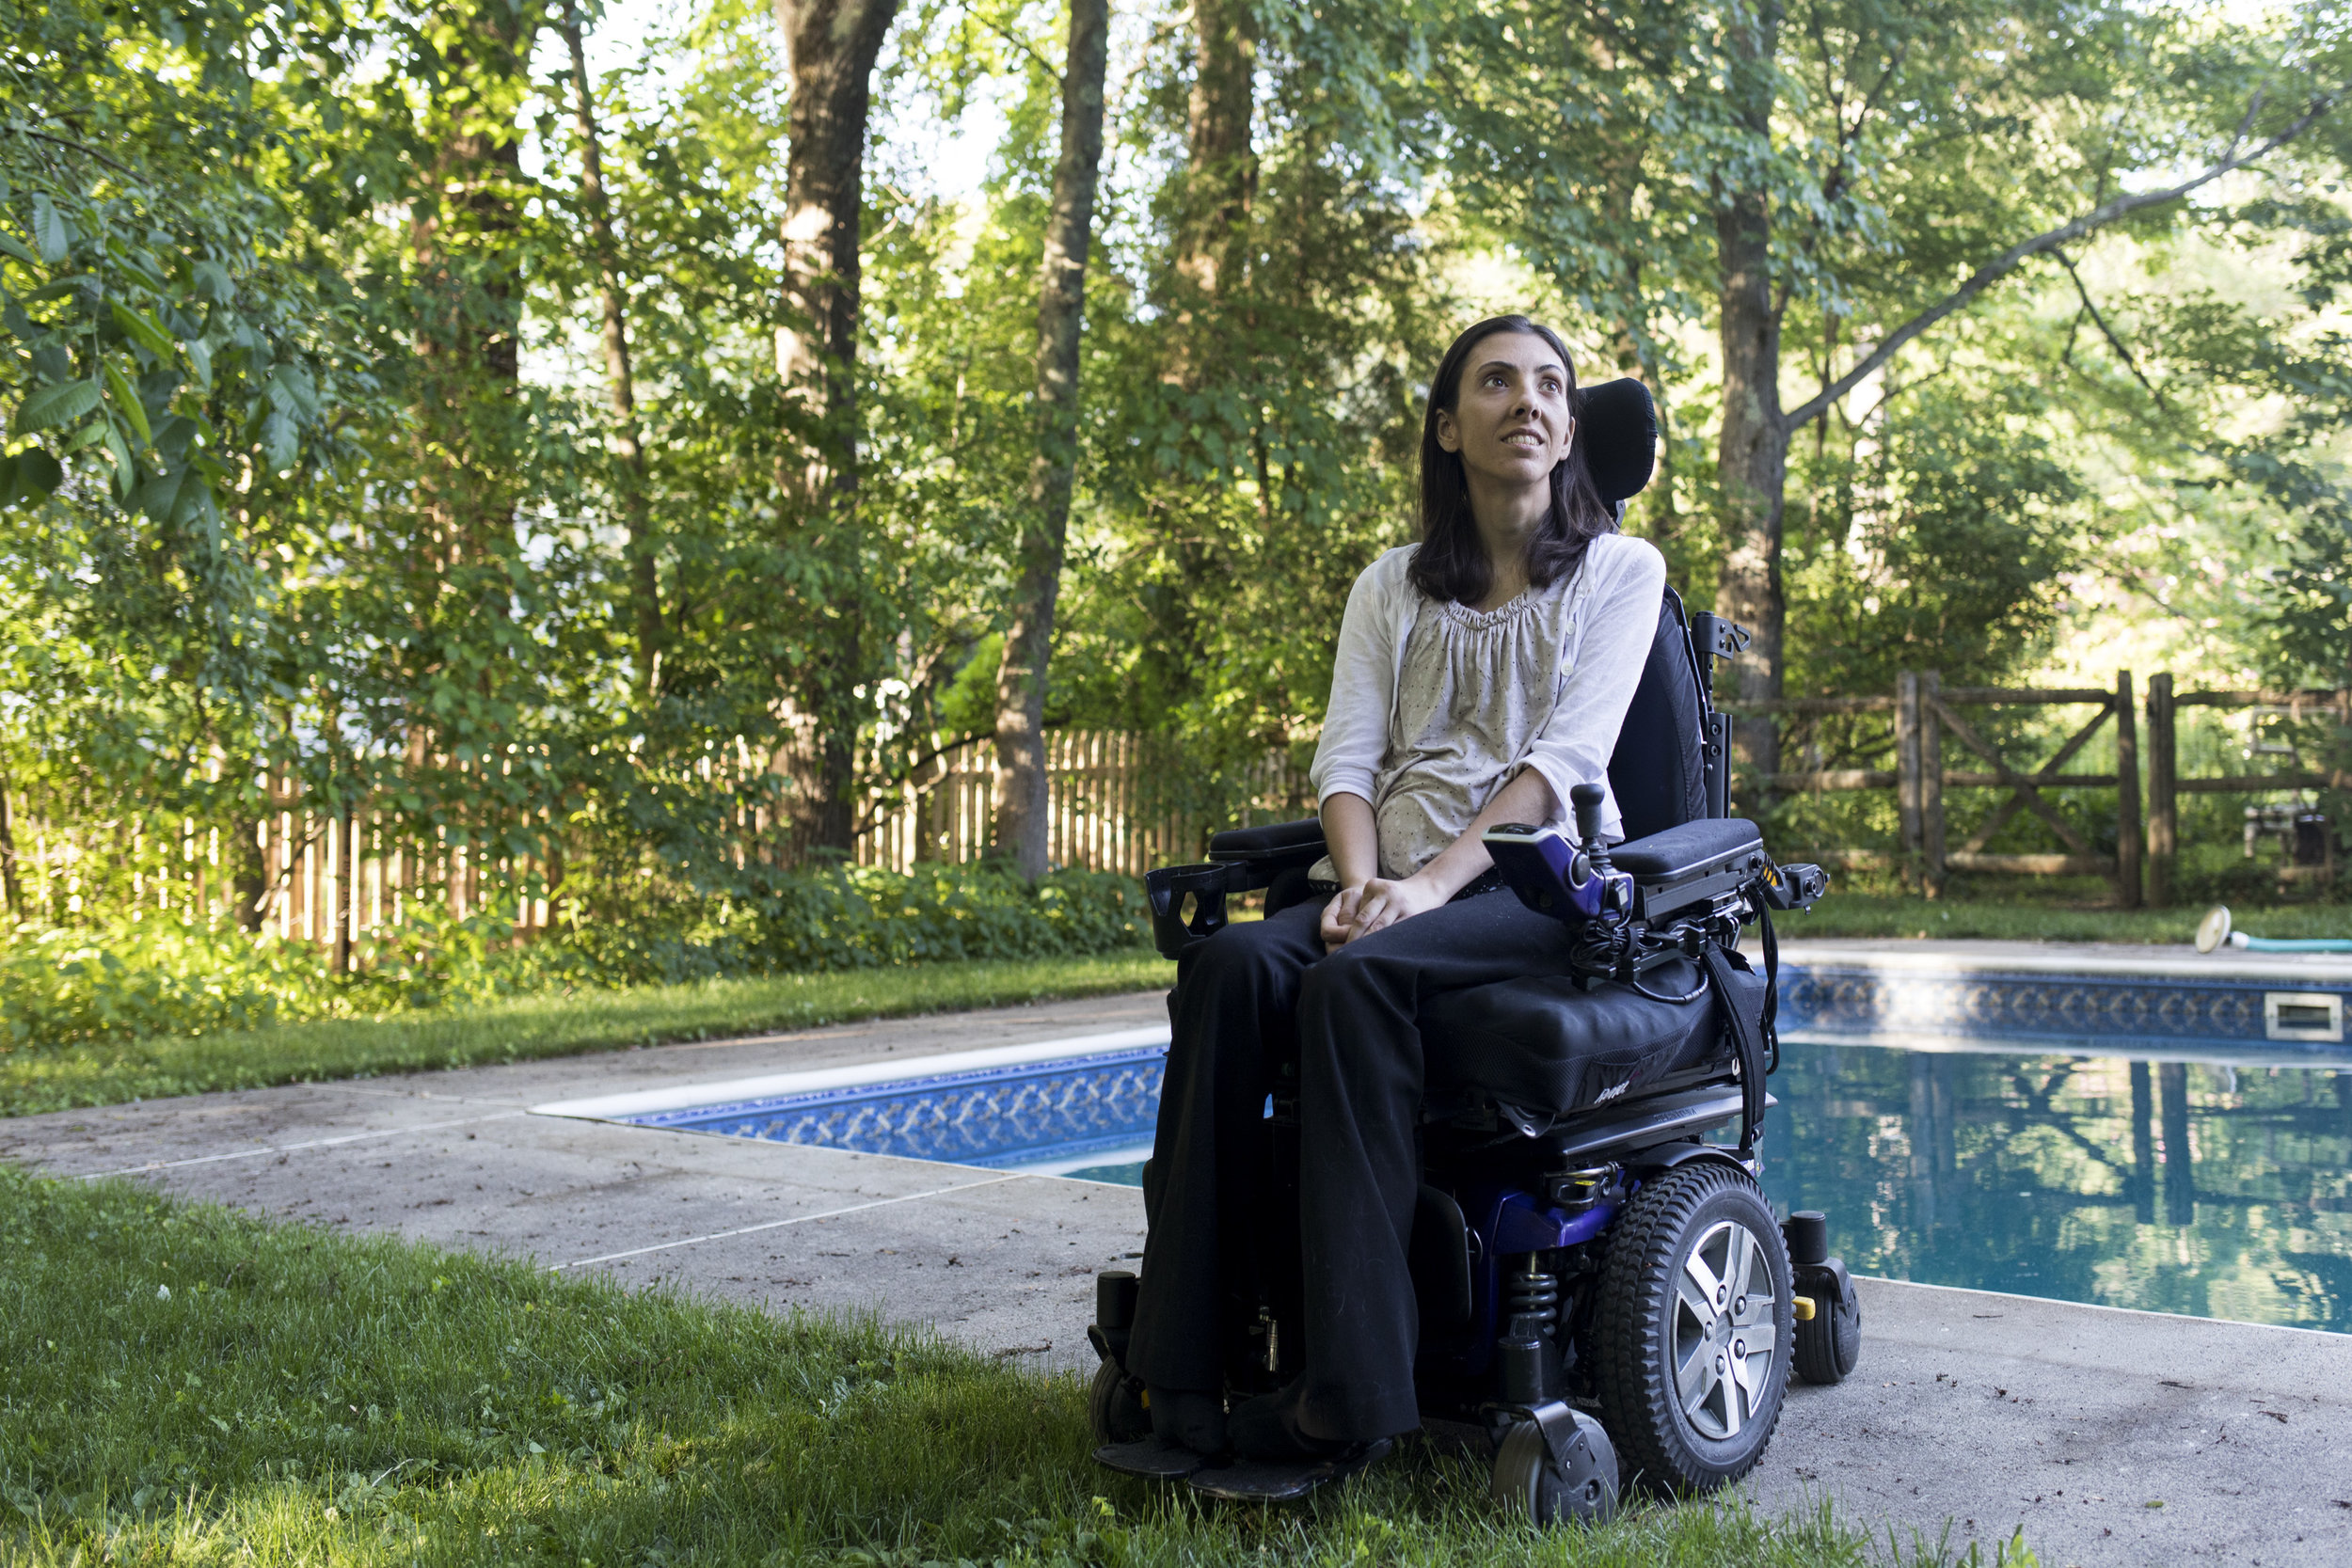 """Stephanie Zaia poses for a portrait at her home in Medfield on June 12, 2018. After years of her dystonia being misdiagnosed, Zaia met Dr. Alice Flaherty, a boundary breaking neurologist at Massachusetts General Hospital. """"She believed me,"""" said Zaia. """"She treated me like a human."""""""